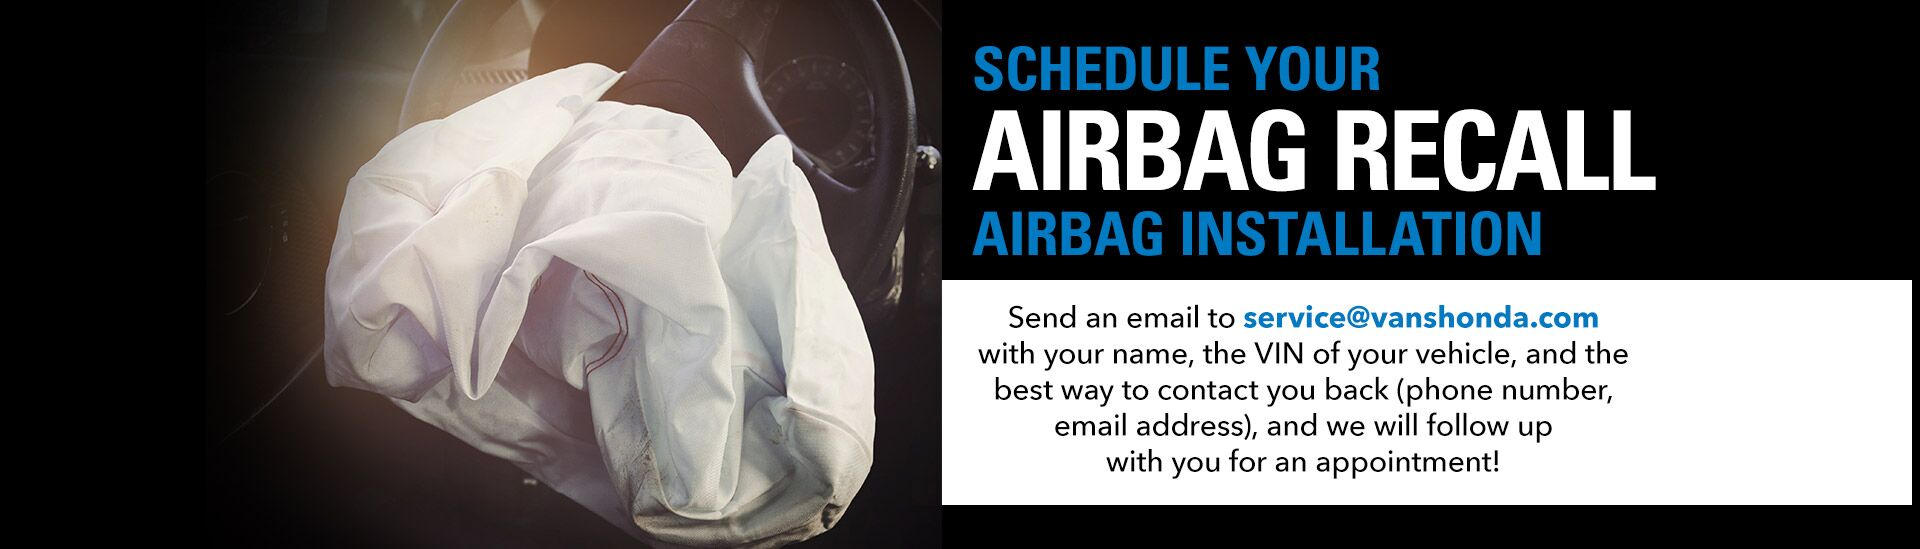 Airbag Recall - Service Email